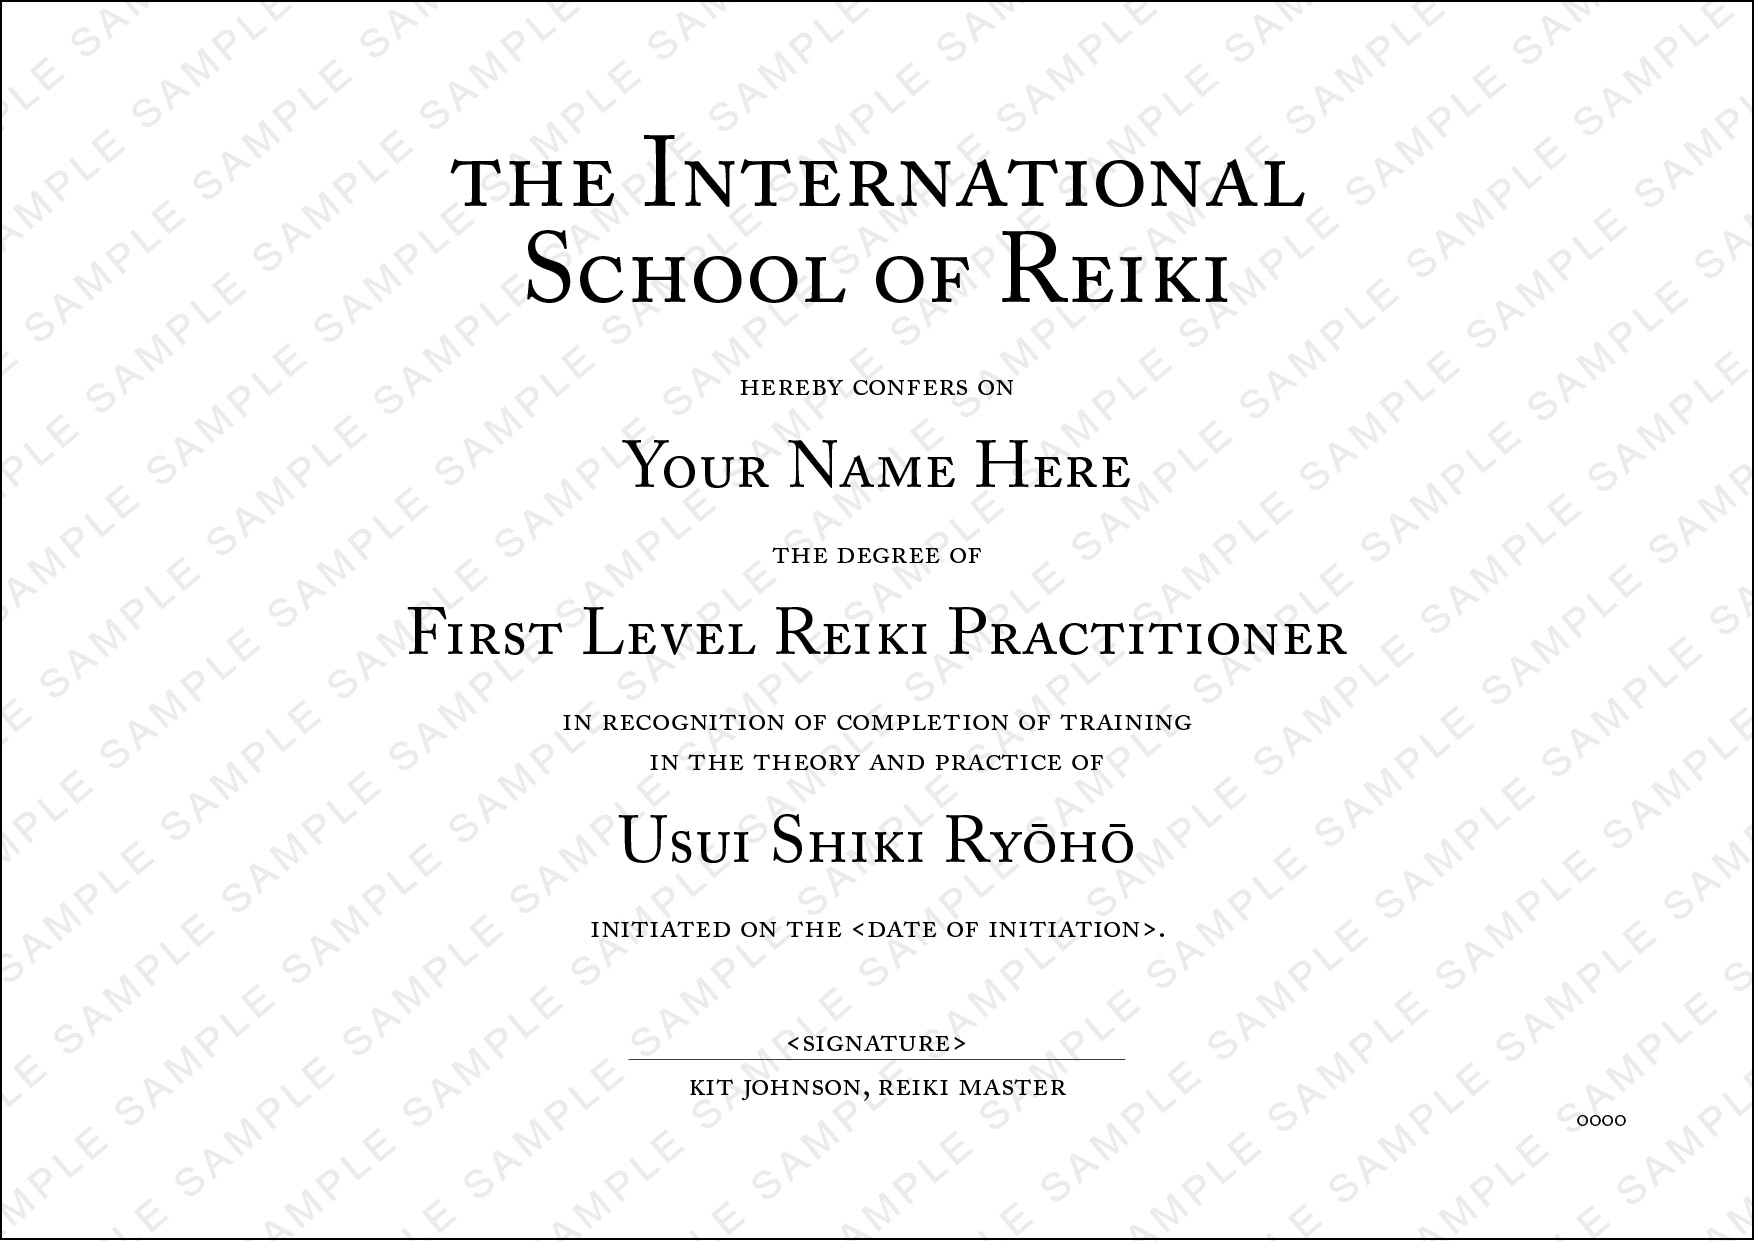 Sample Reiki One Certificate